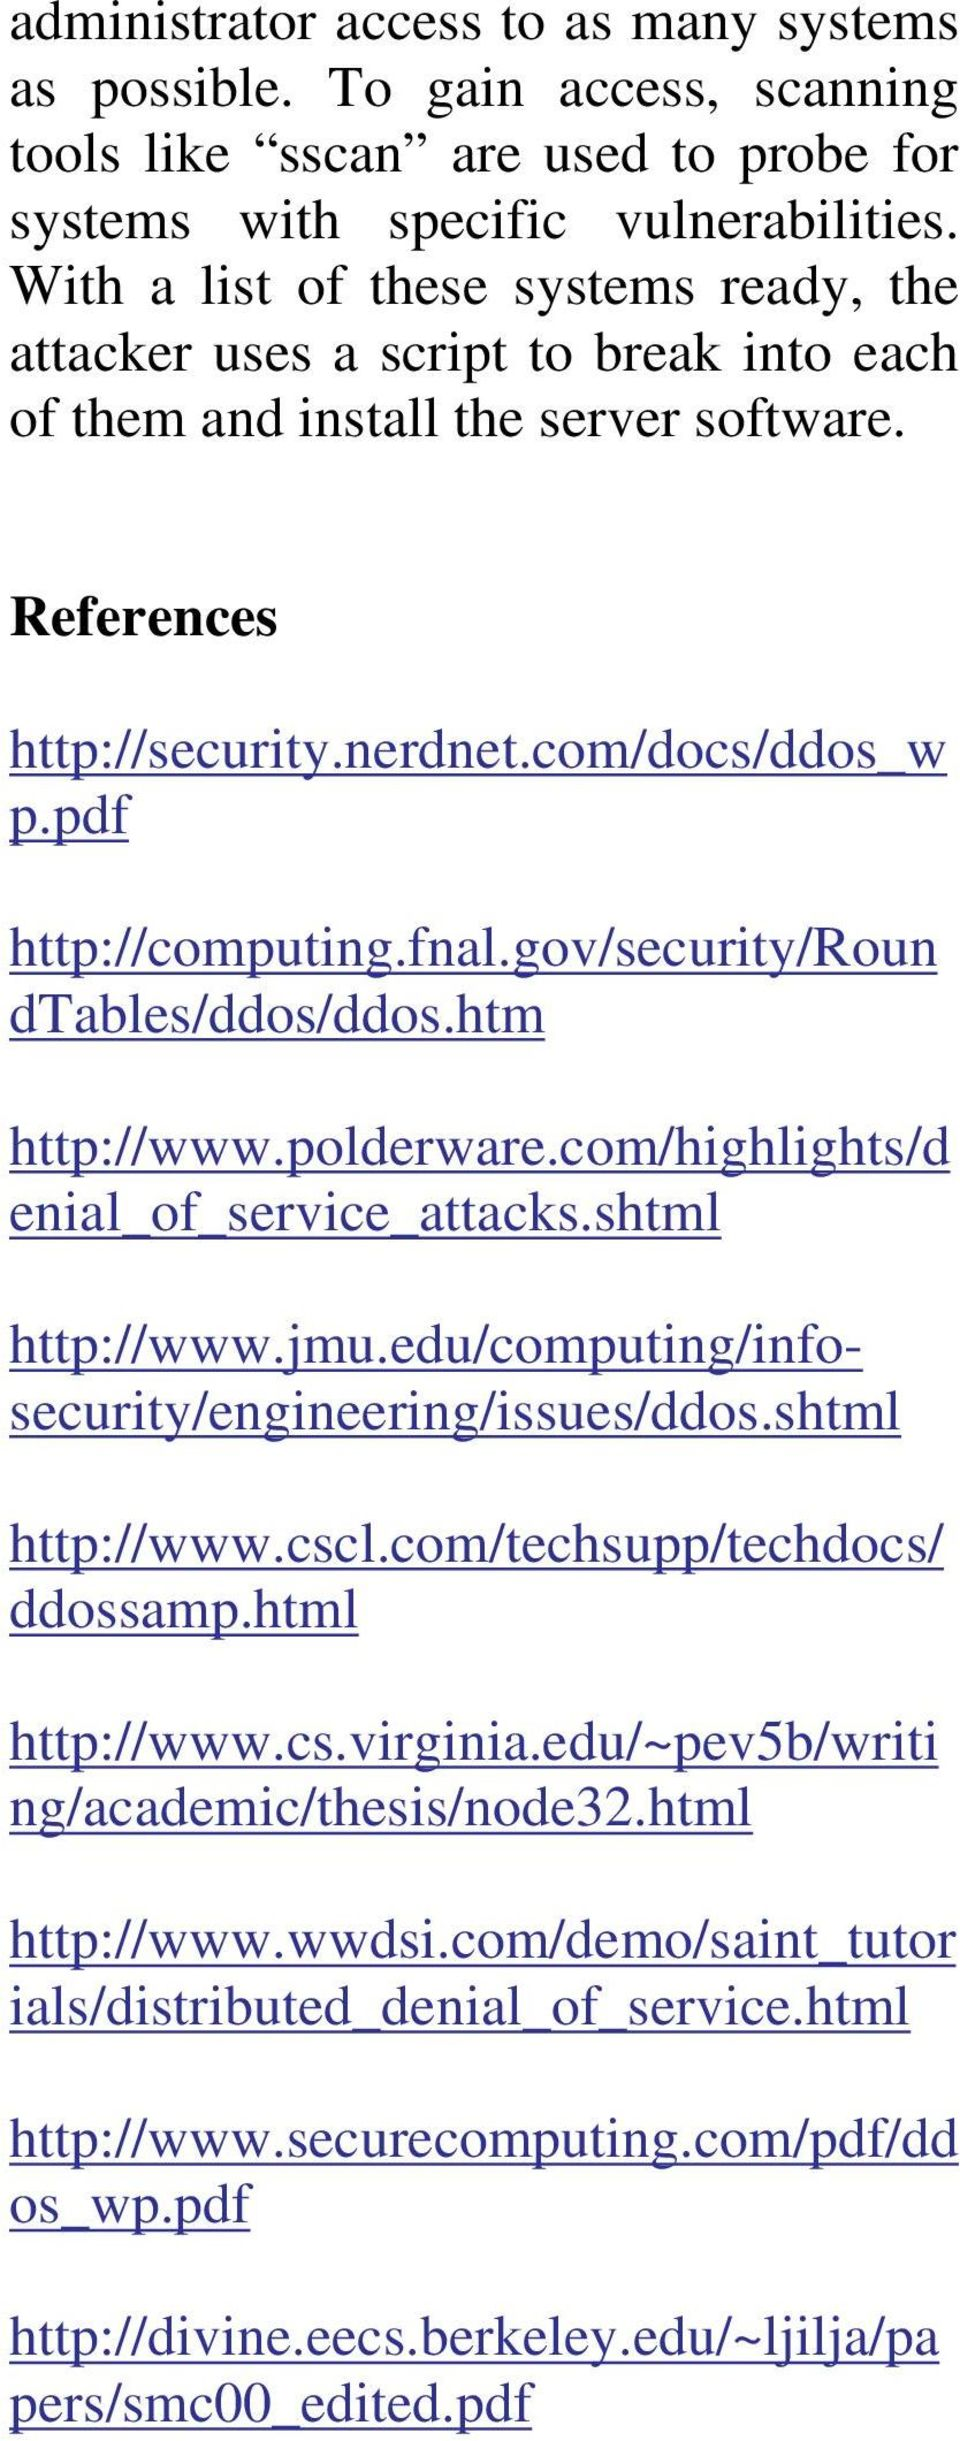 fnal.gov/security/roun dtables/ddos/ddos.htm http://www.polderware.com/highlights/d enial_of_service_attacks.shtml http://www.jmu.edu/computing/infosecurity/engineering/issues/ddos.shtml http://www.cscl.